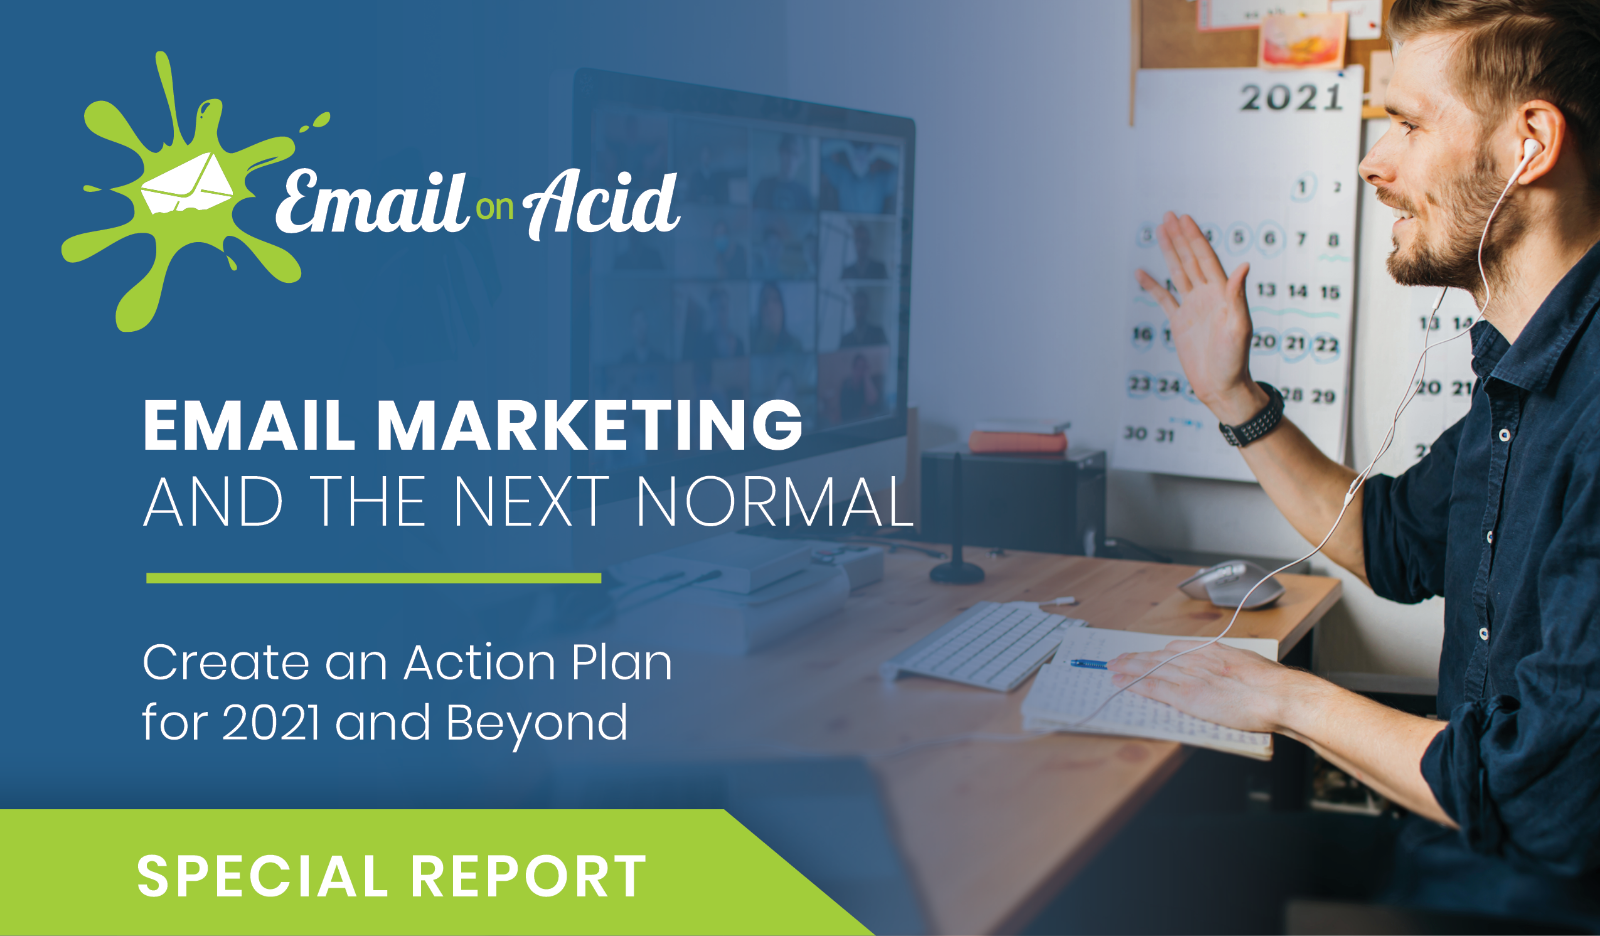 email marketer works on 2021 action plan